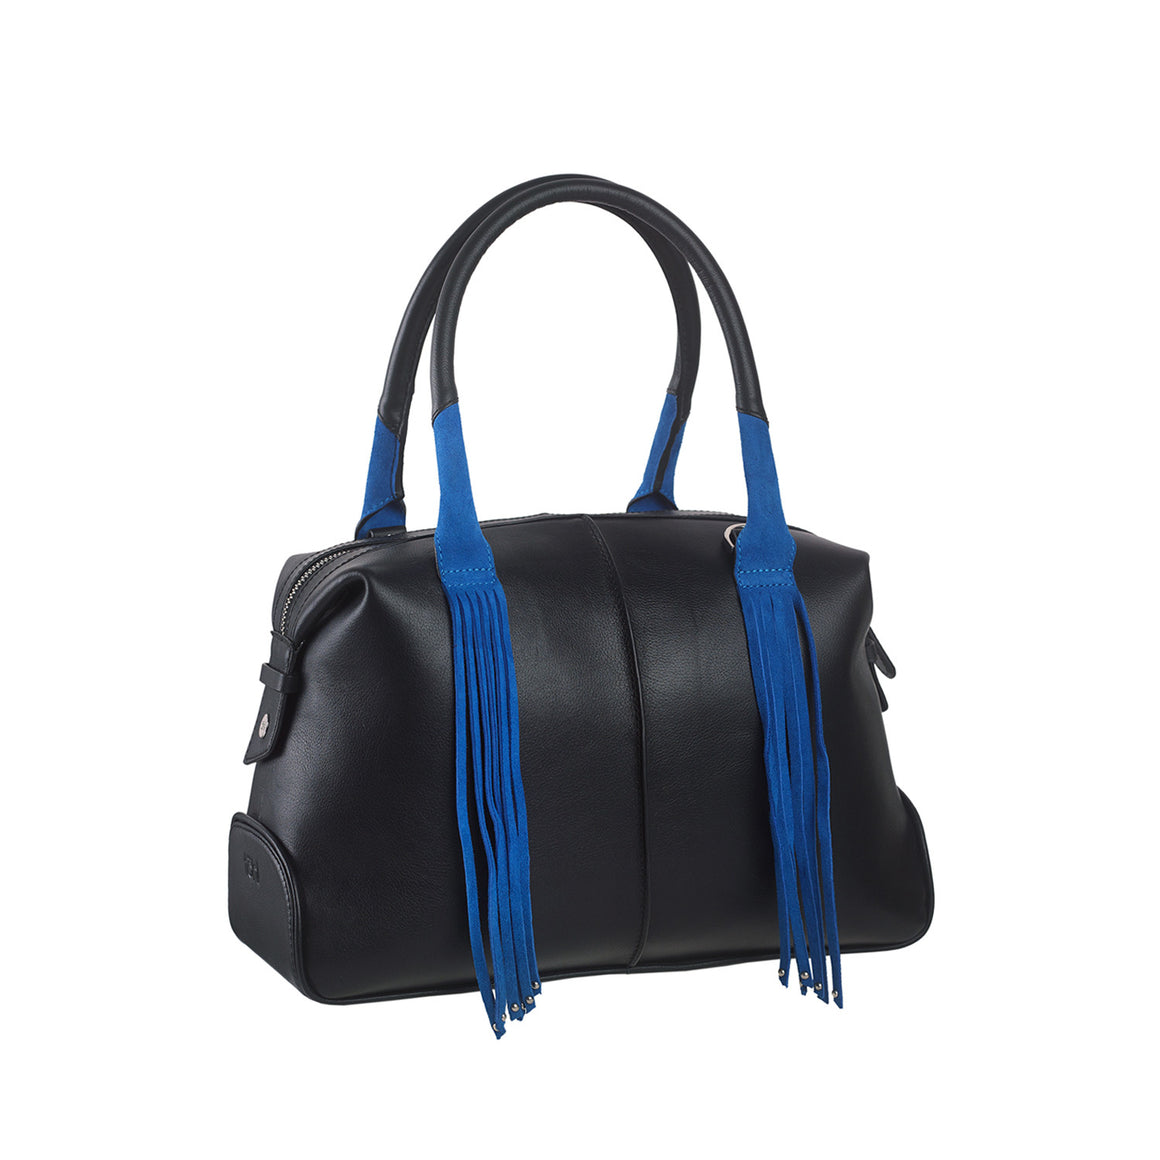 SB 0013 - TOHL ROBYN WOMEN'S DAY BAG - CHARCOAL BLACK